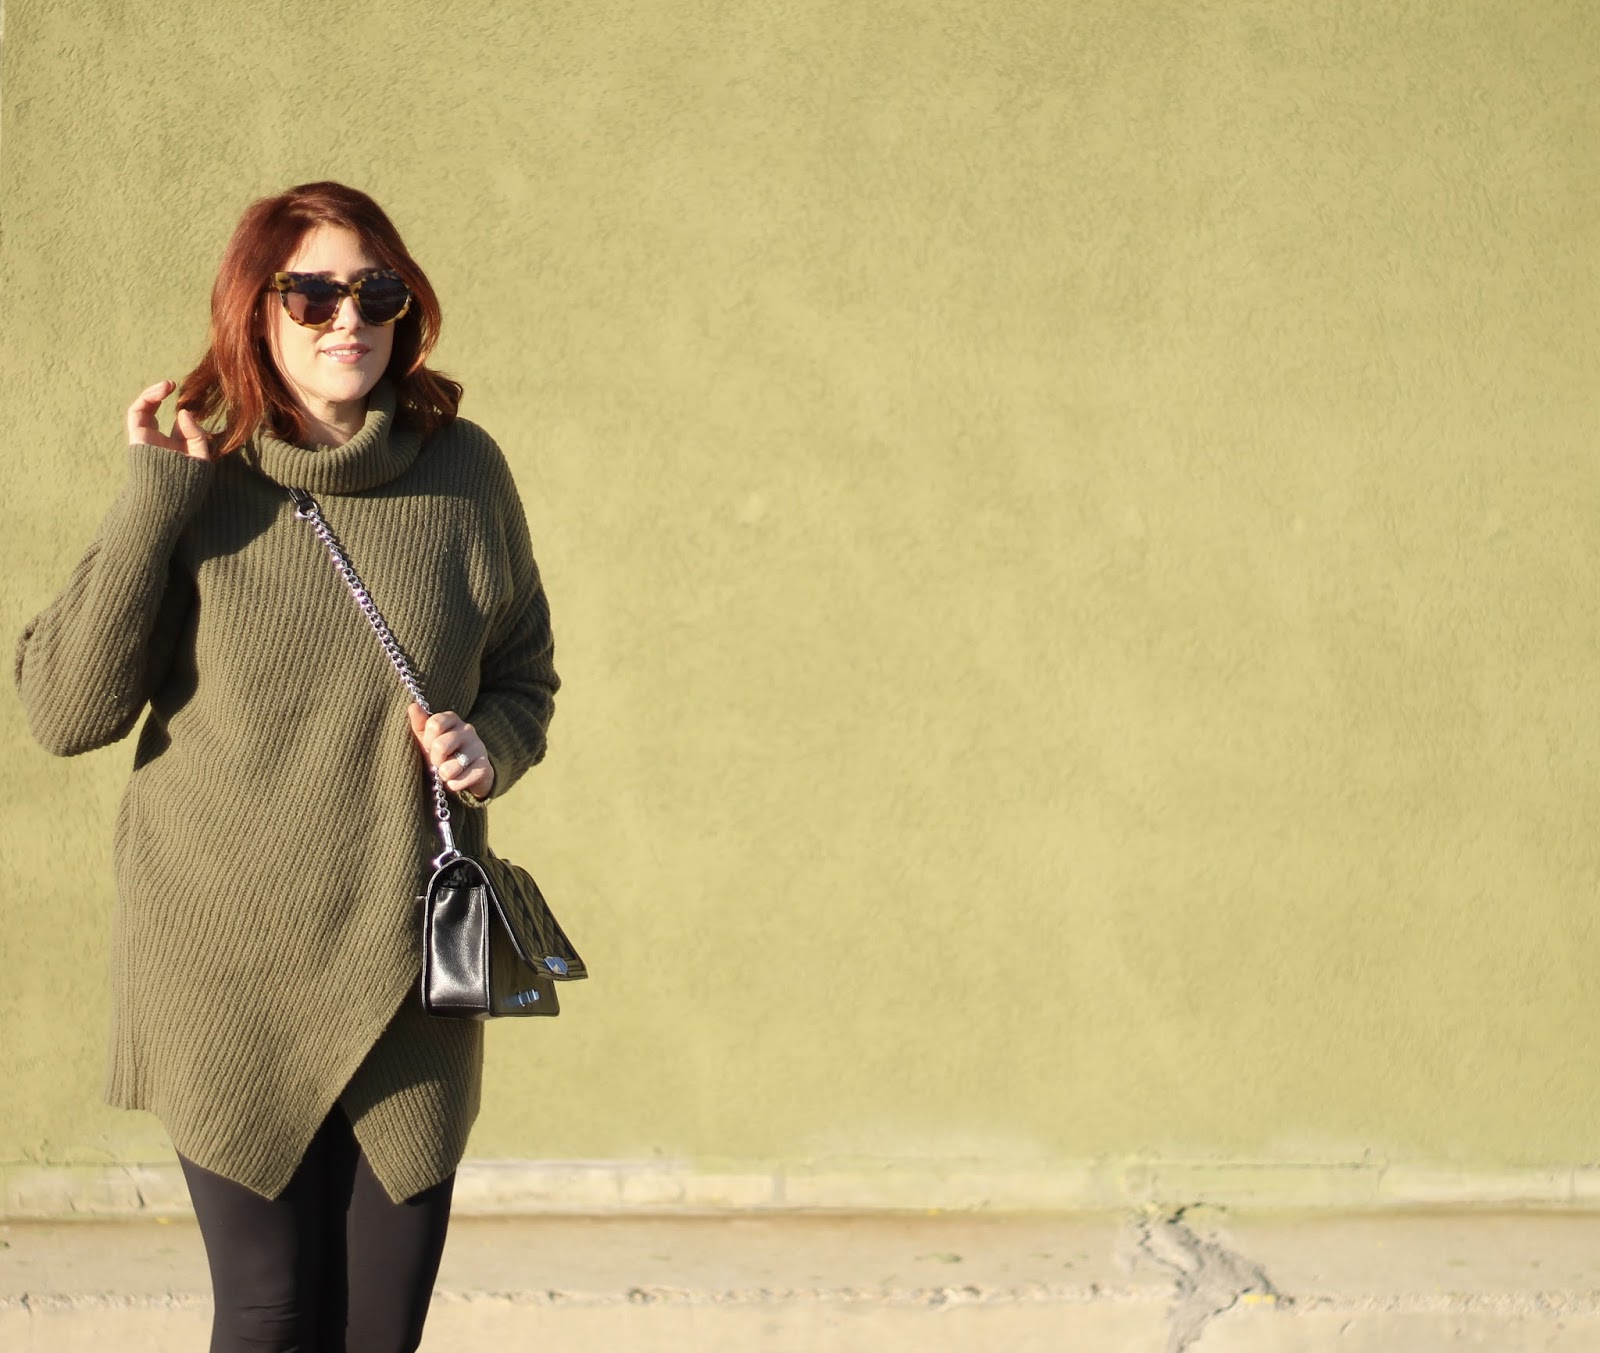 Athleisure outfit, banana republic wrap sweater karen walker, sunburst sunglasses rebecca minkoff love crossbody black